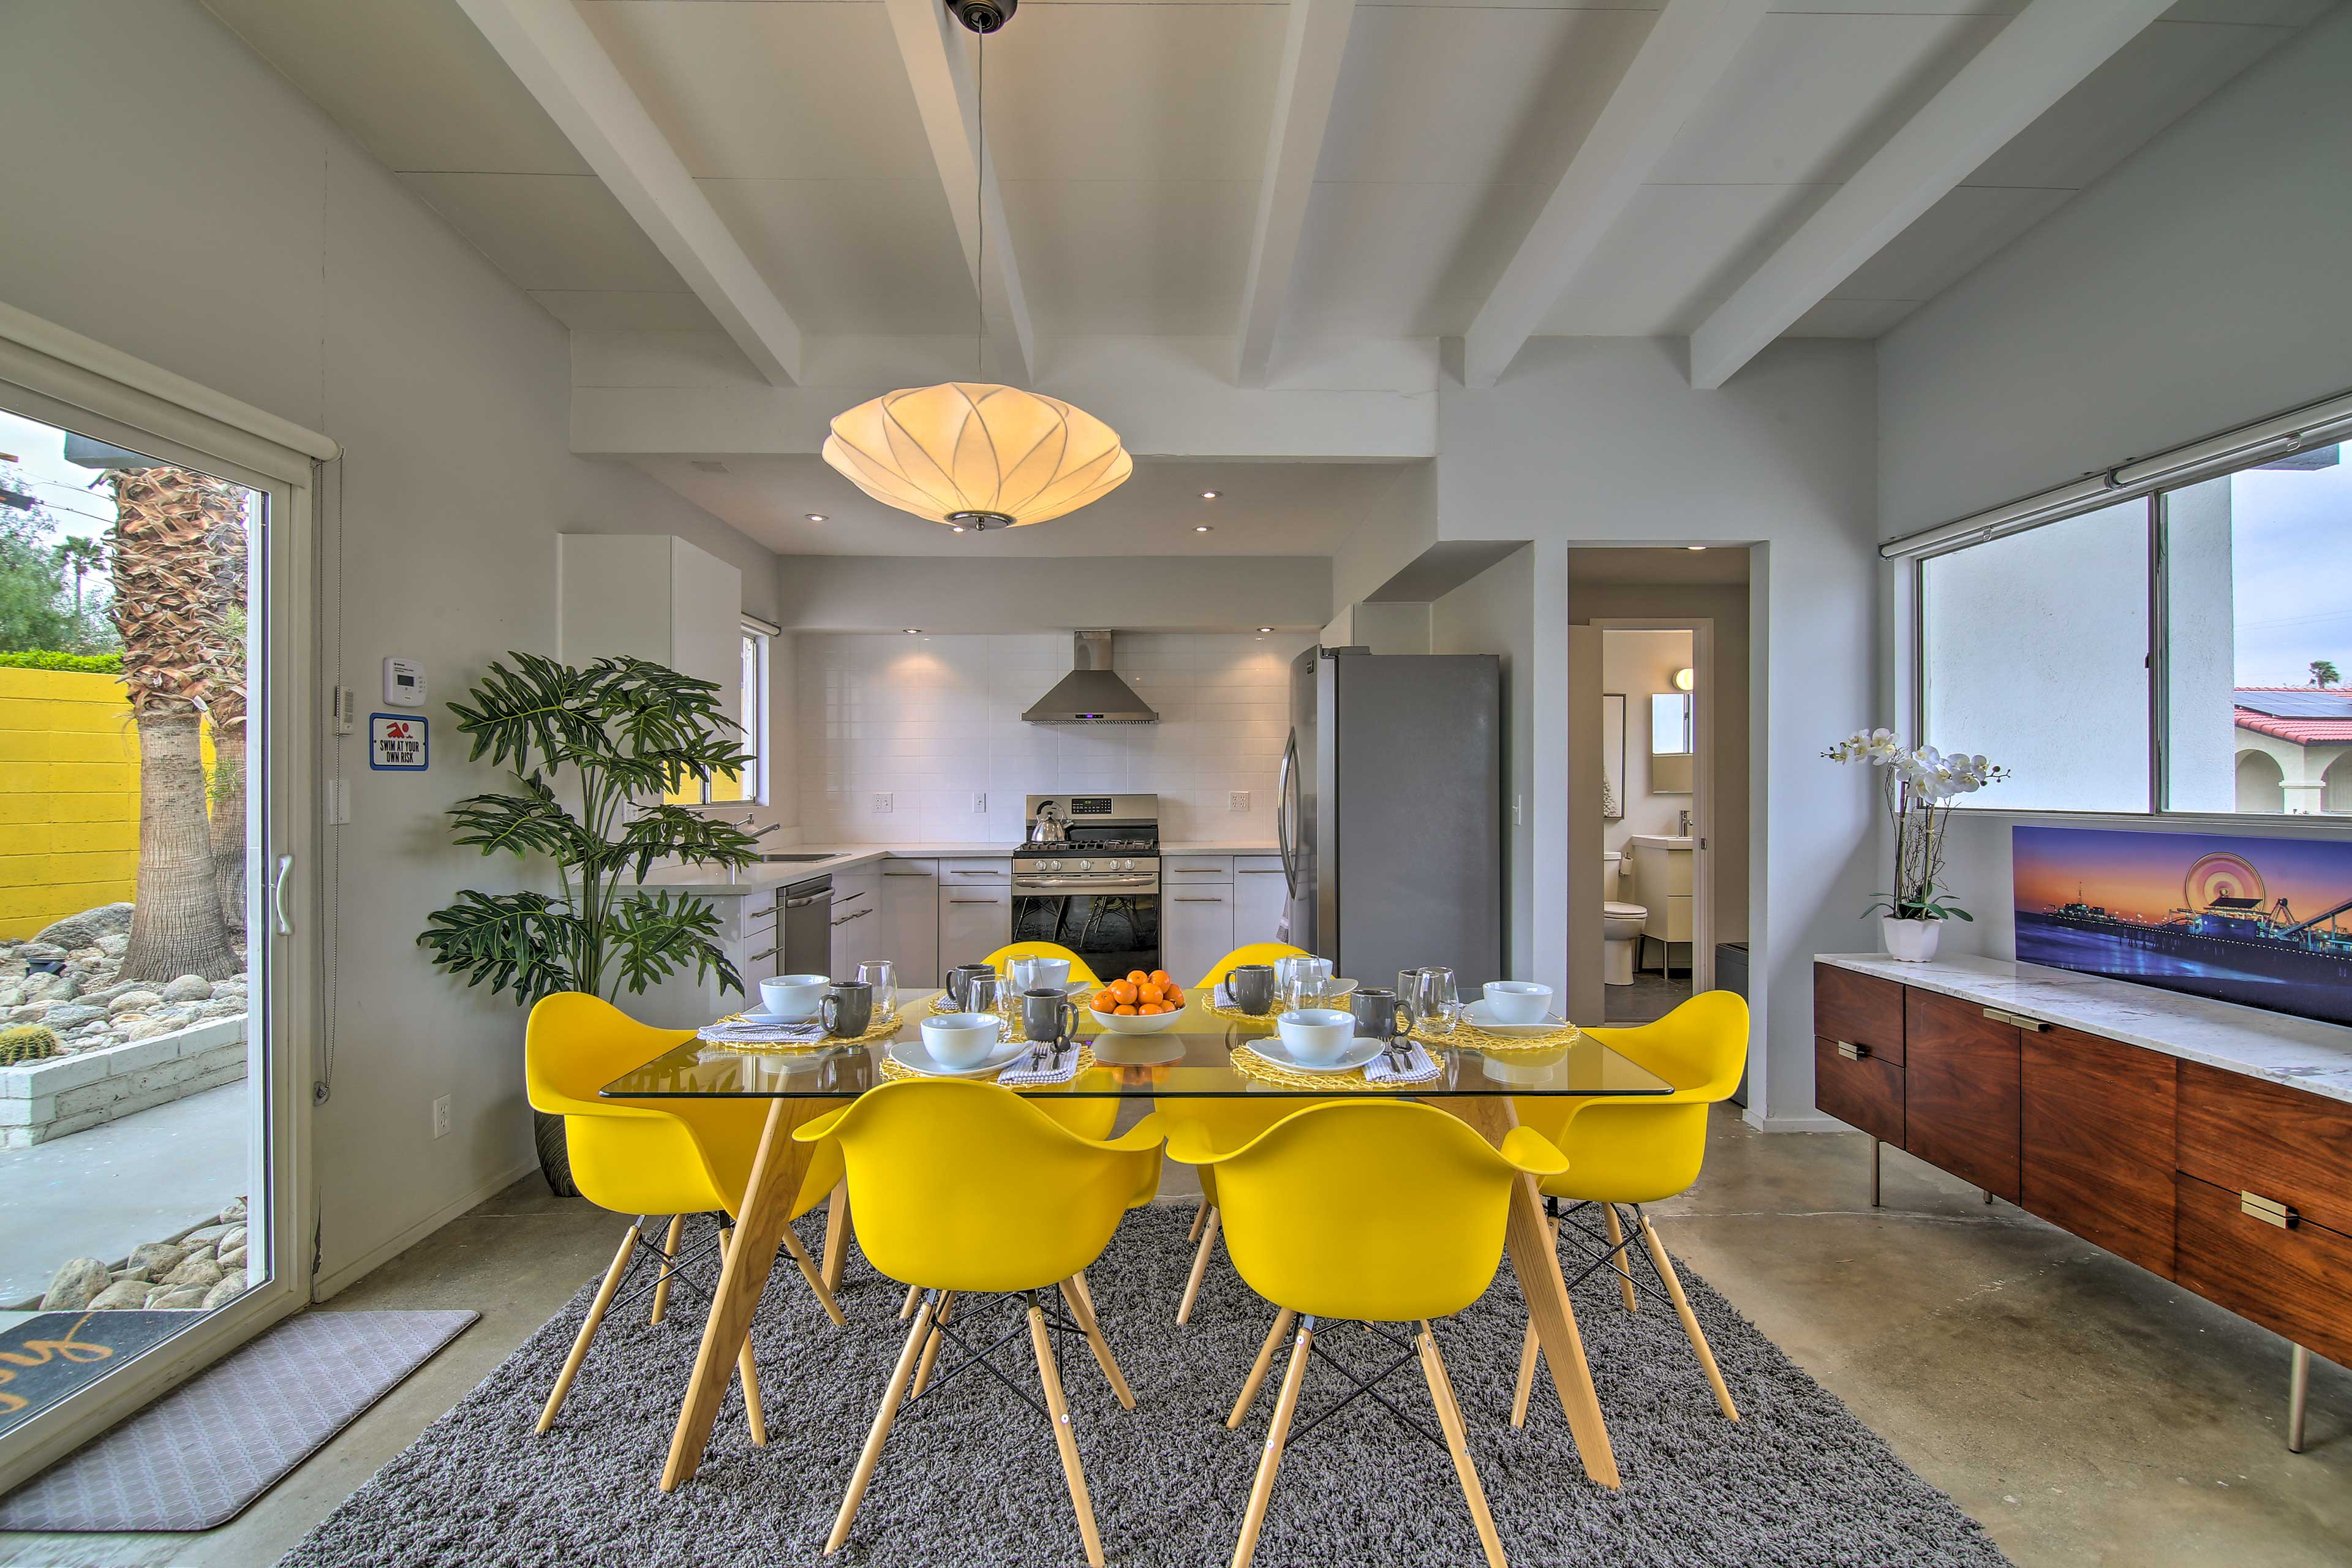 The dining area seamlessly flows into the kitchen.